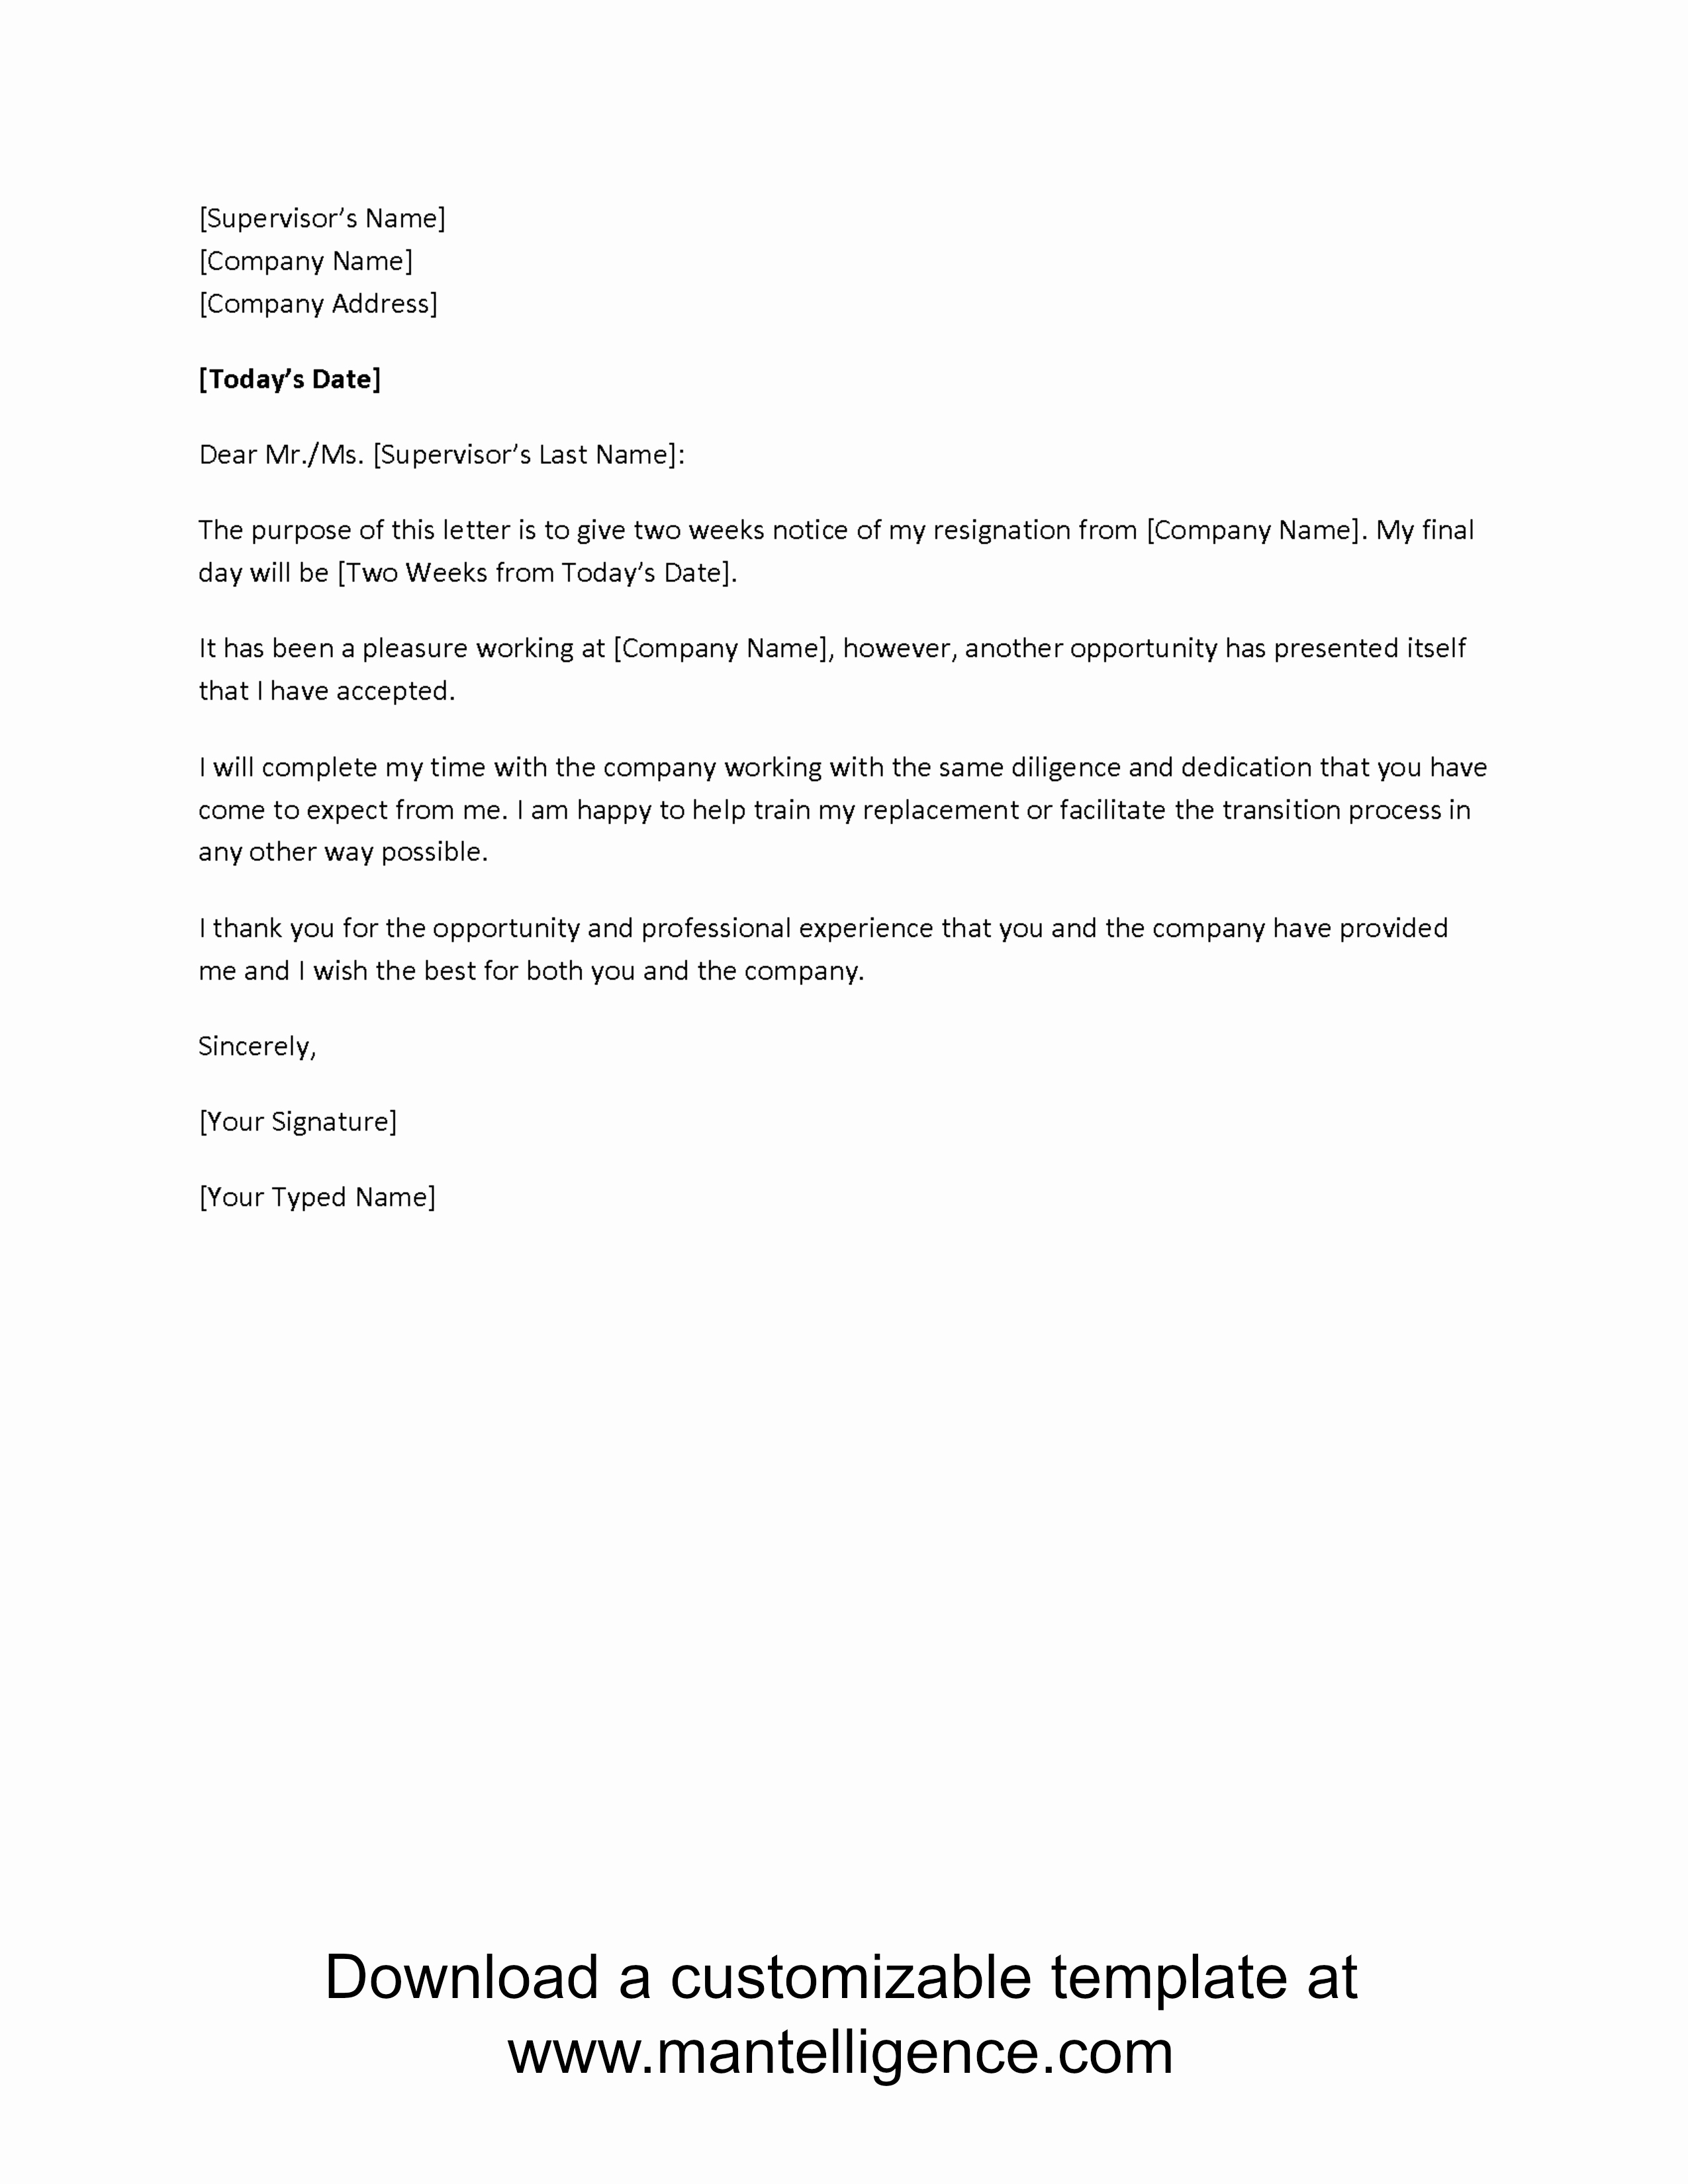 Resignation Letter Two Weeks Notice Awesome New Opportunity Two Weeks Notice Letter Template P